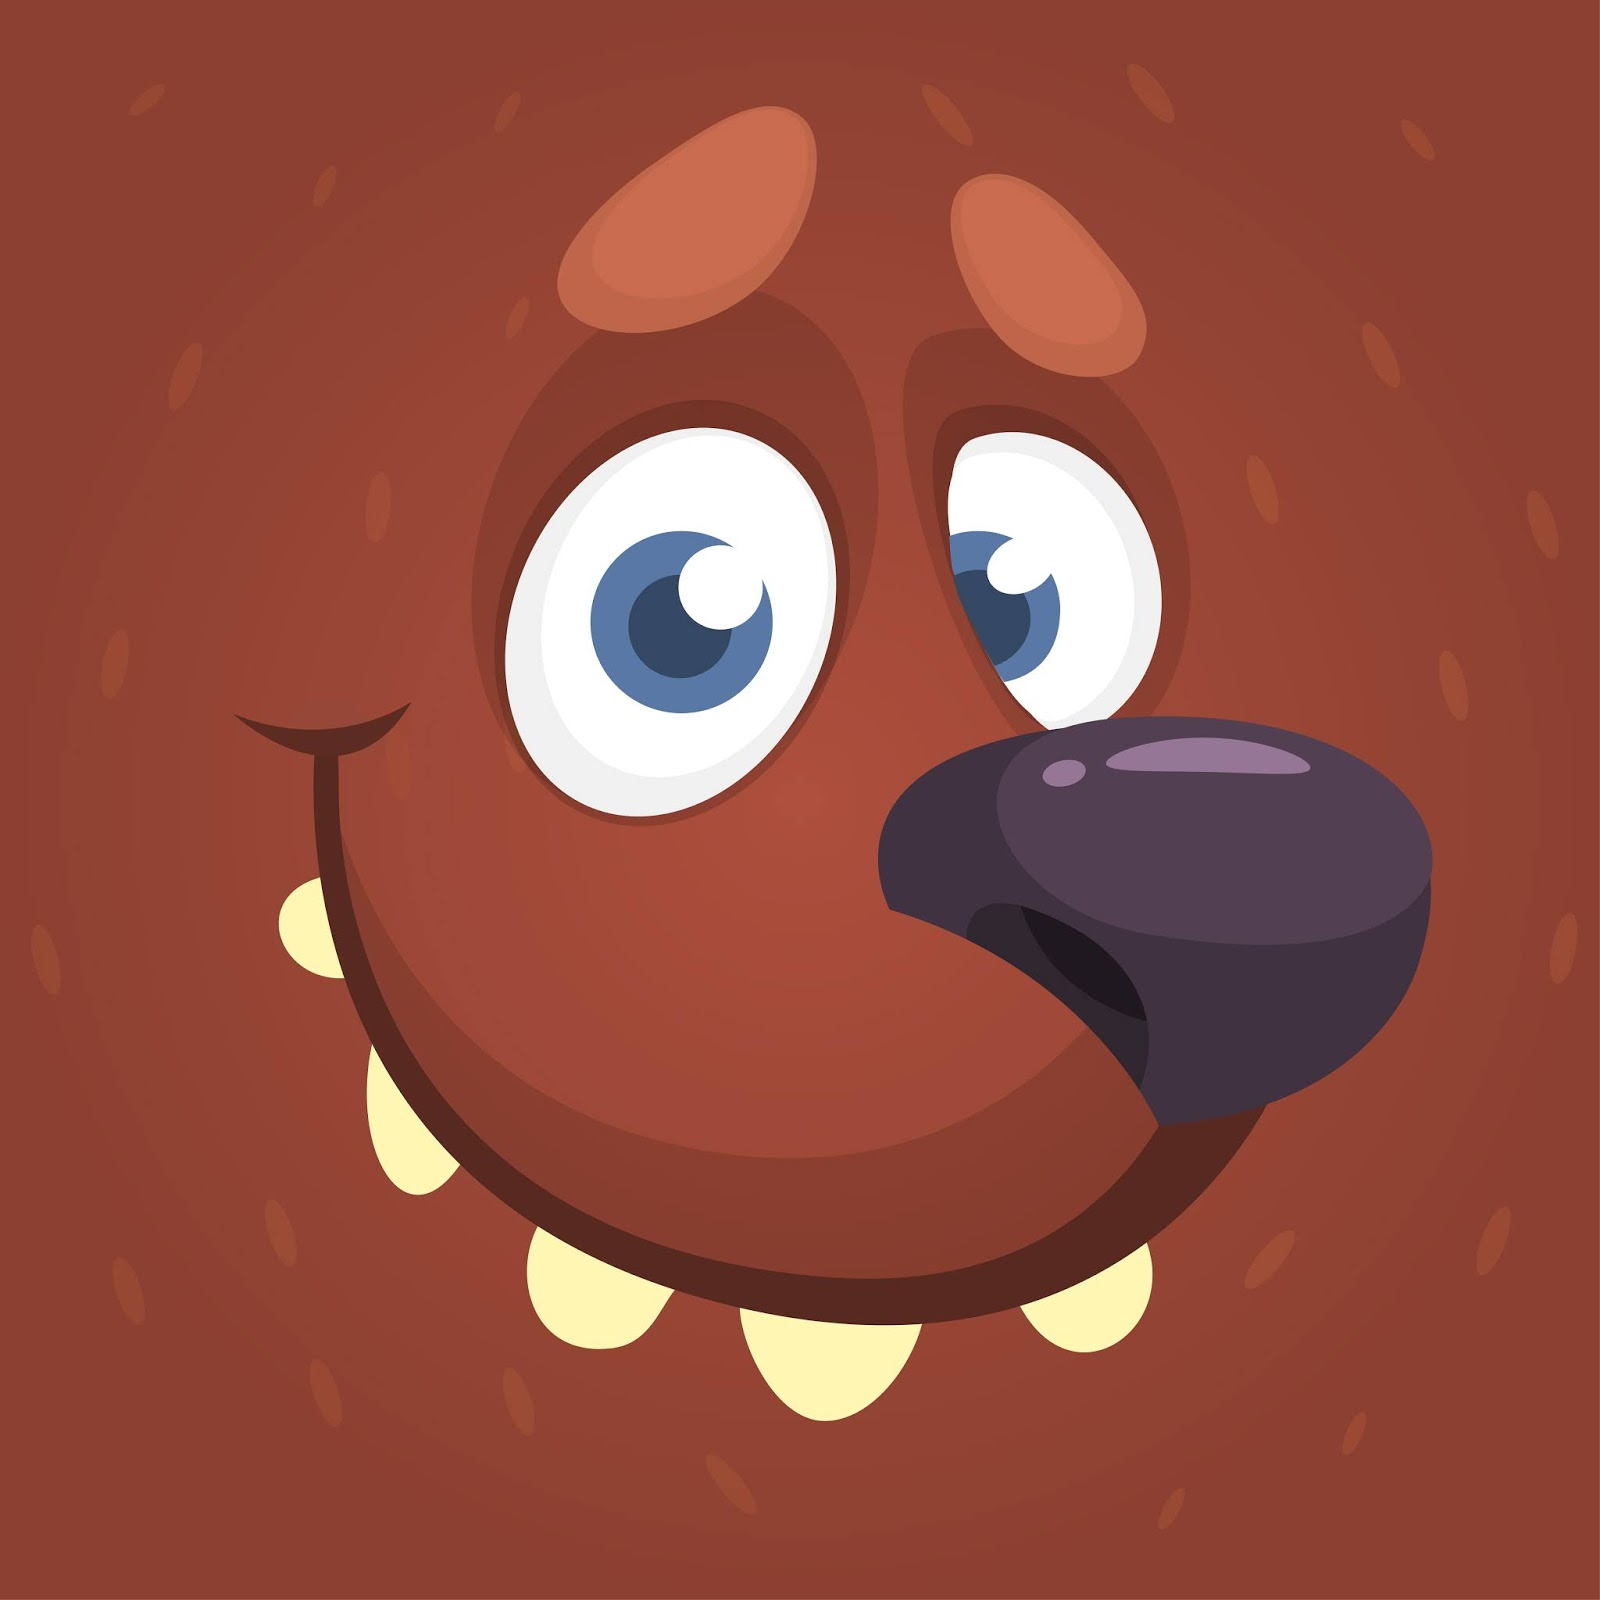 Cartoon Funny Bear Face Illustration Free Download Vector CDR, AI, EPS and PNG Formats